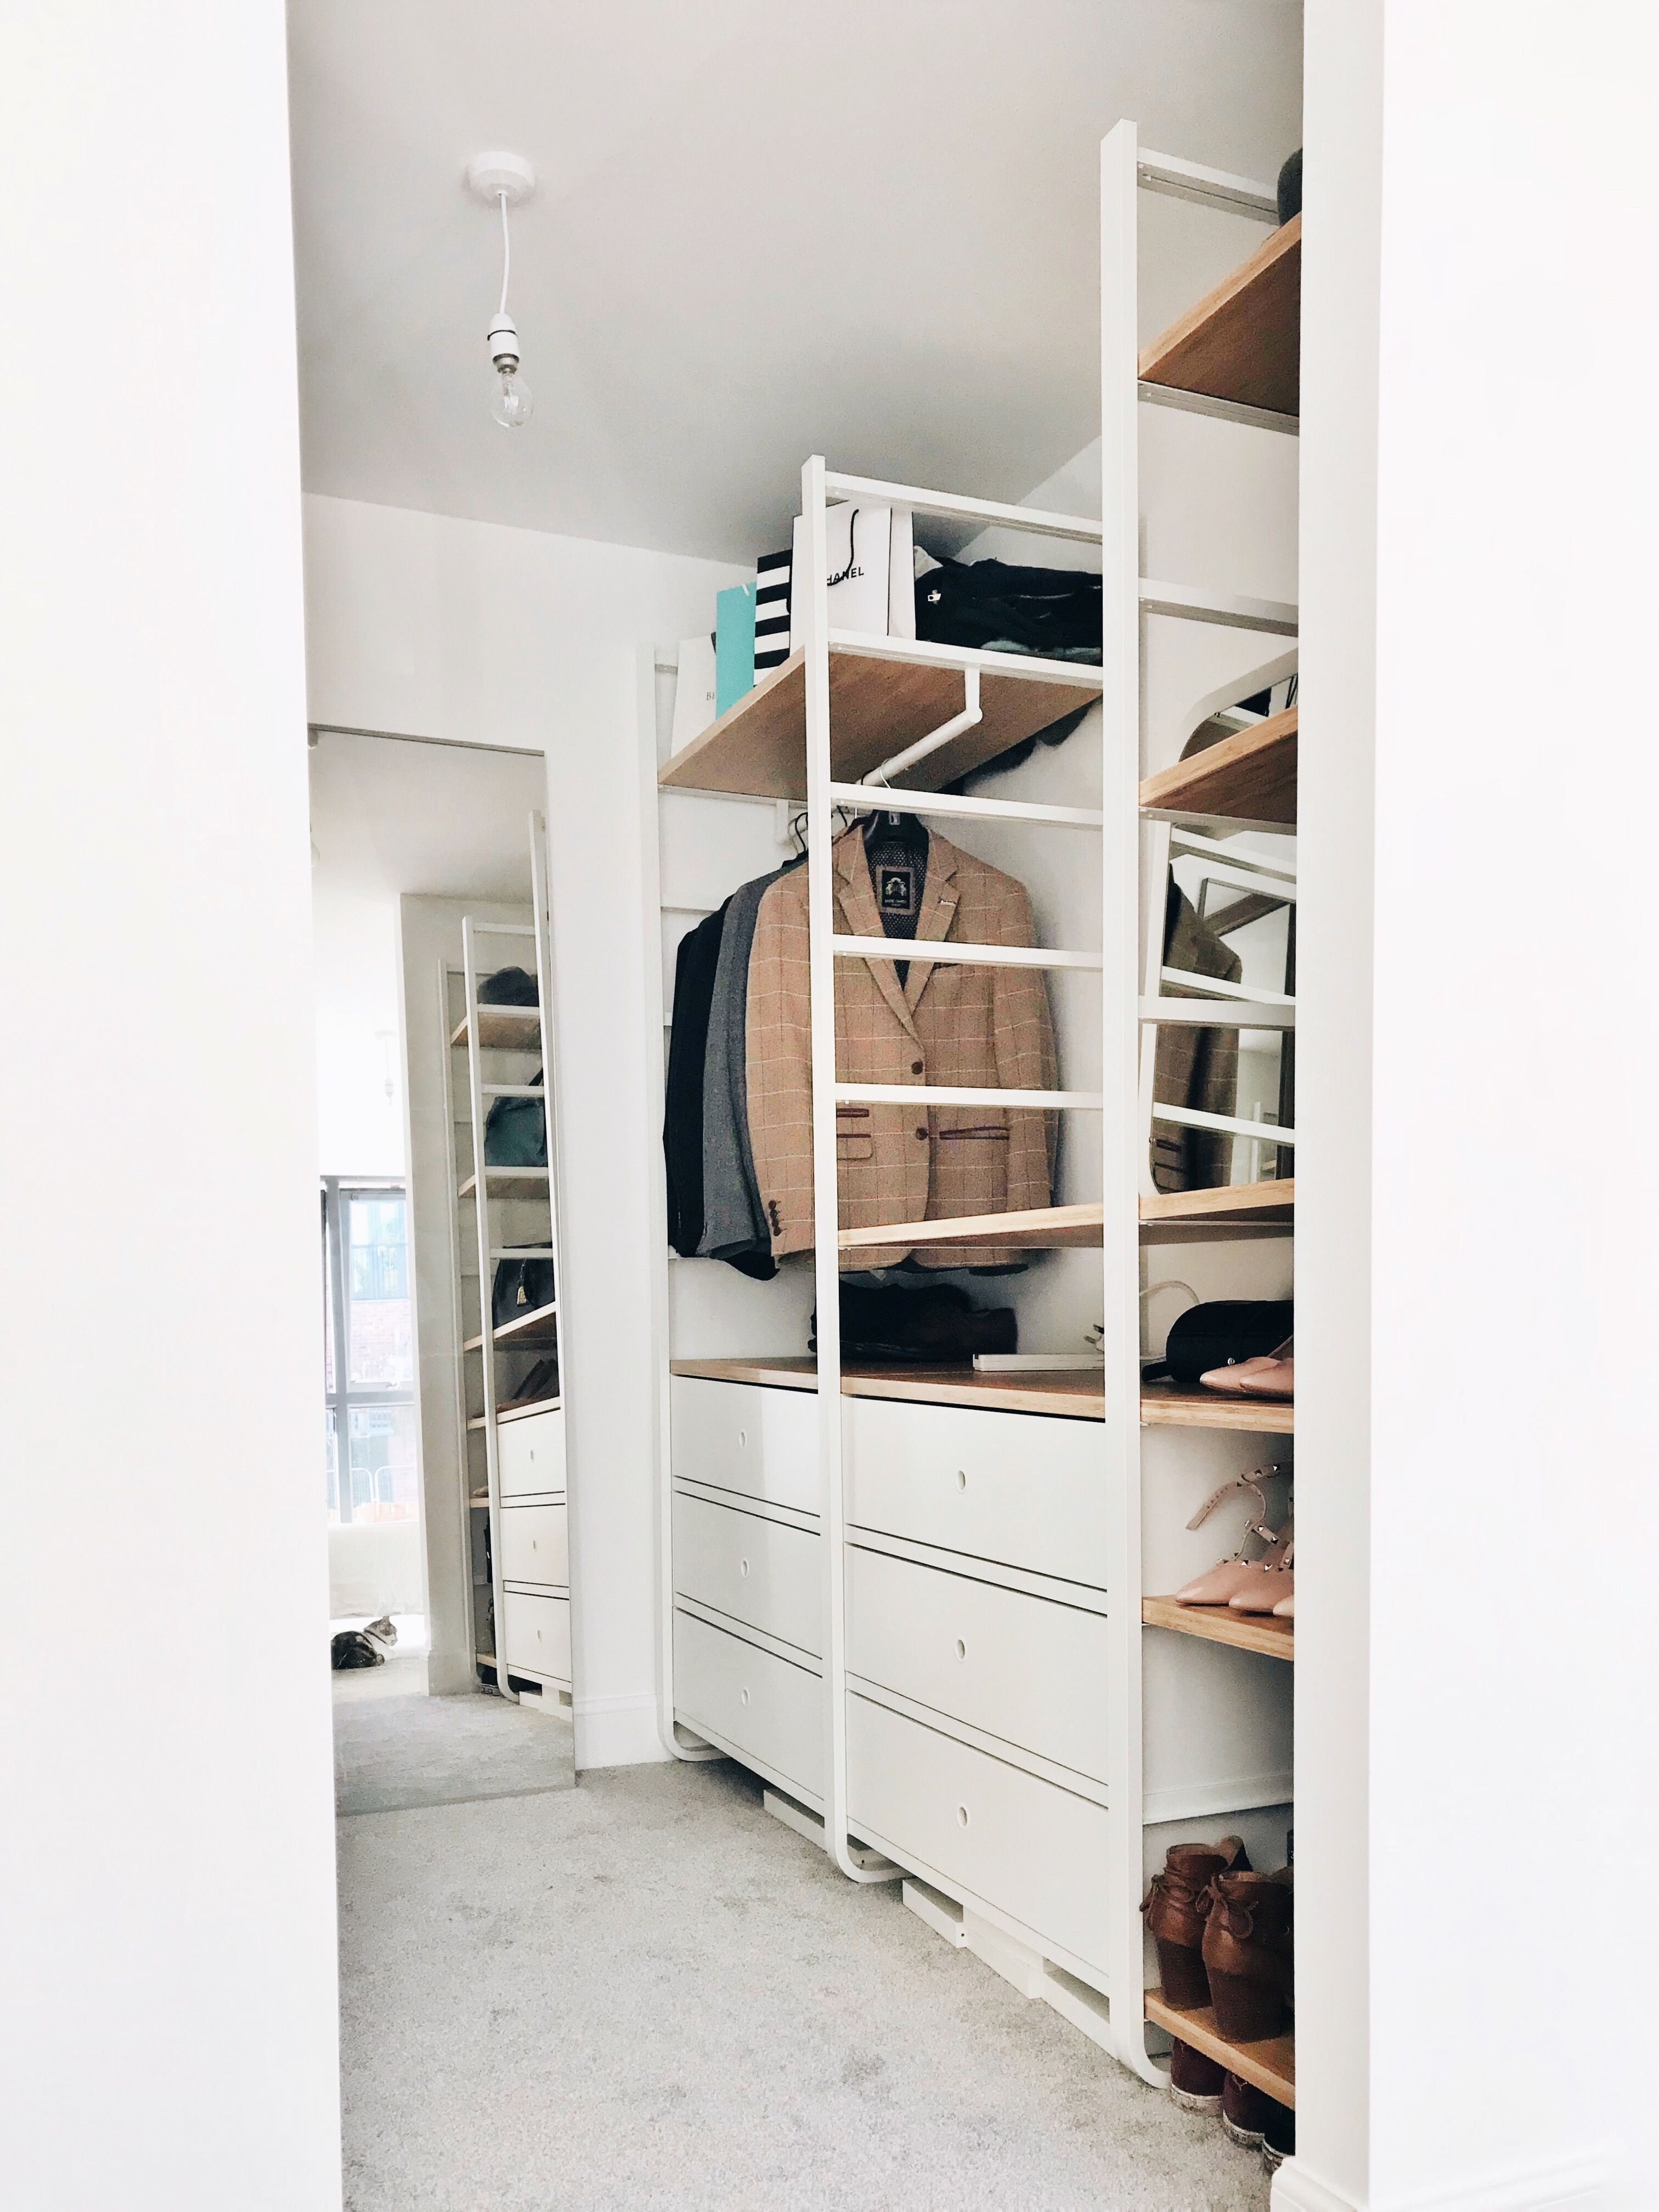 Ikea elvarli wardrobe our house in 2019 pinterest for Elvarli ikea hack